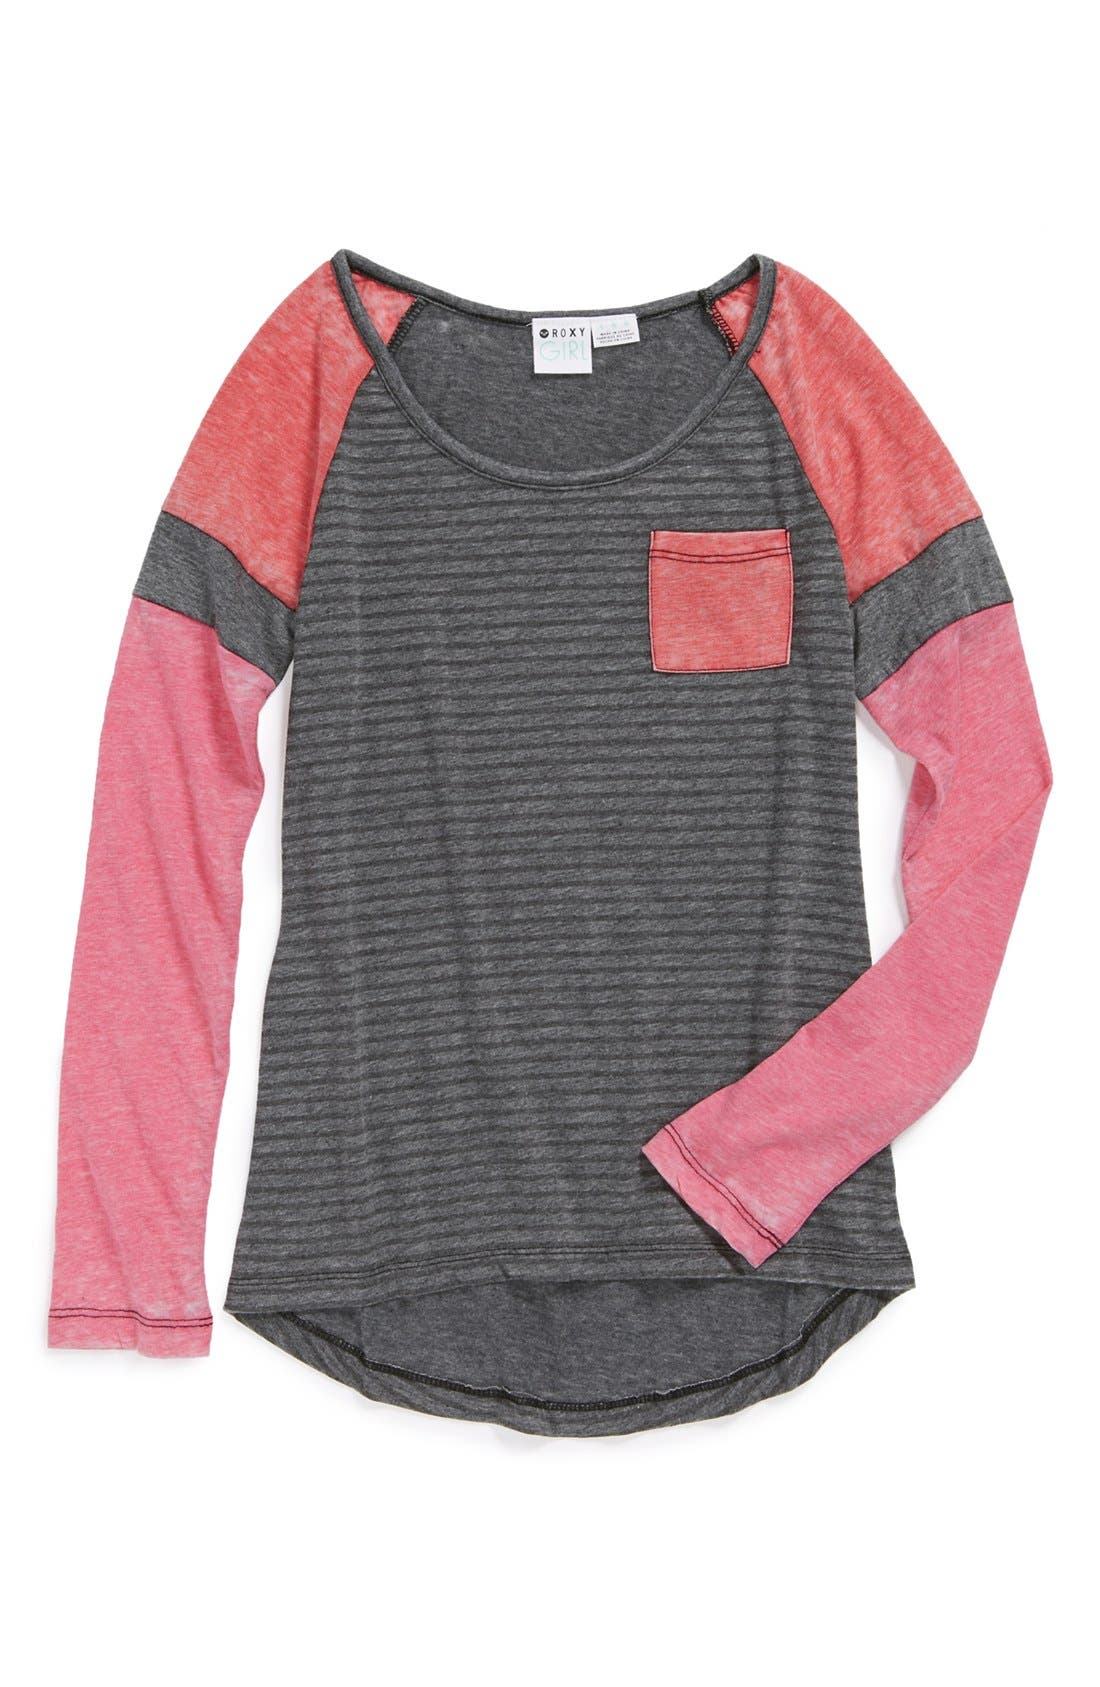 Main Image - Roxy 'Endless Winter' Colorblock Tee (Big Girls)